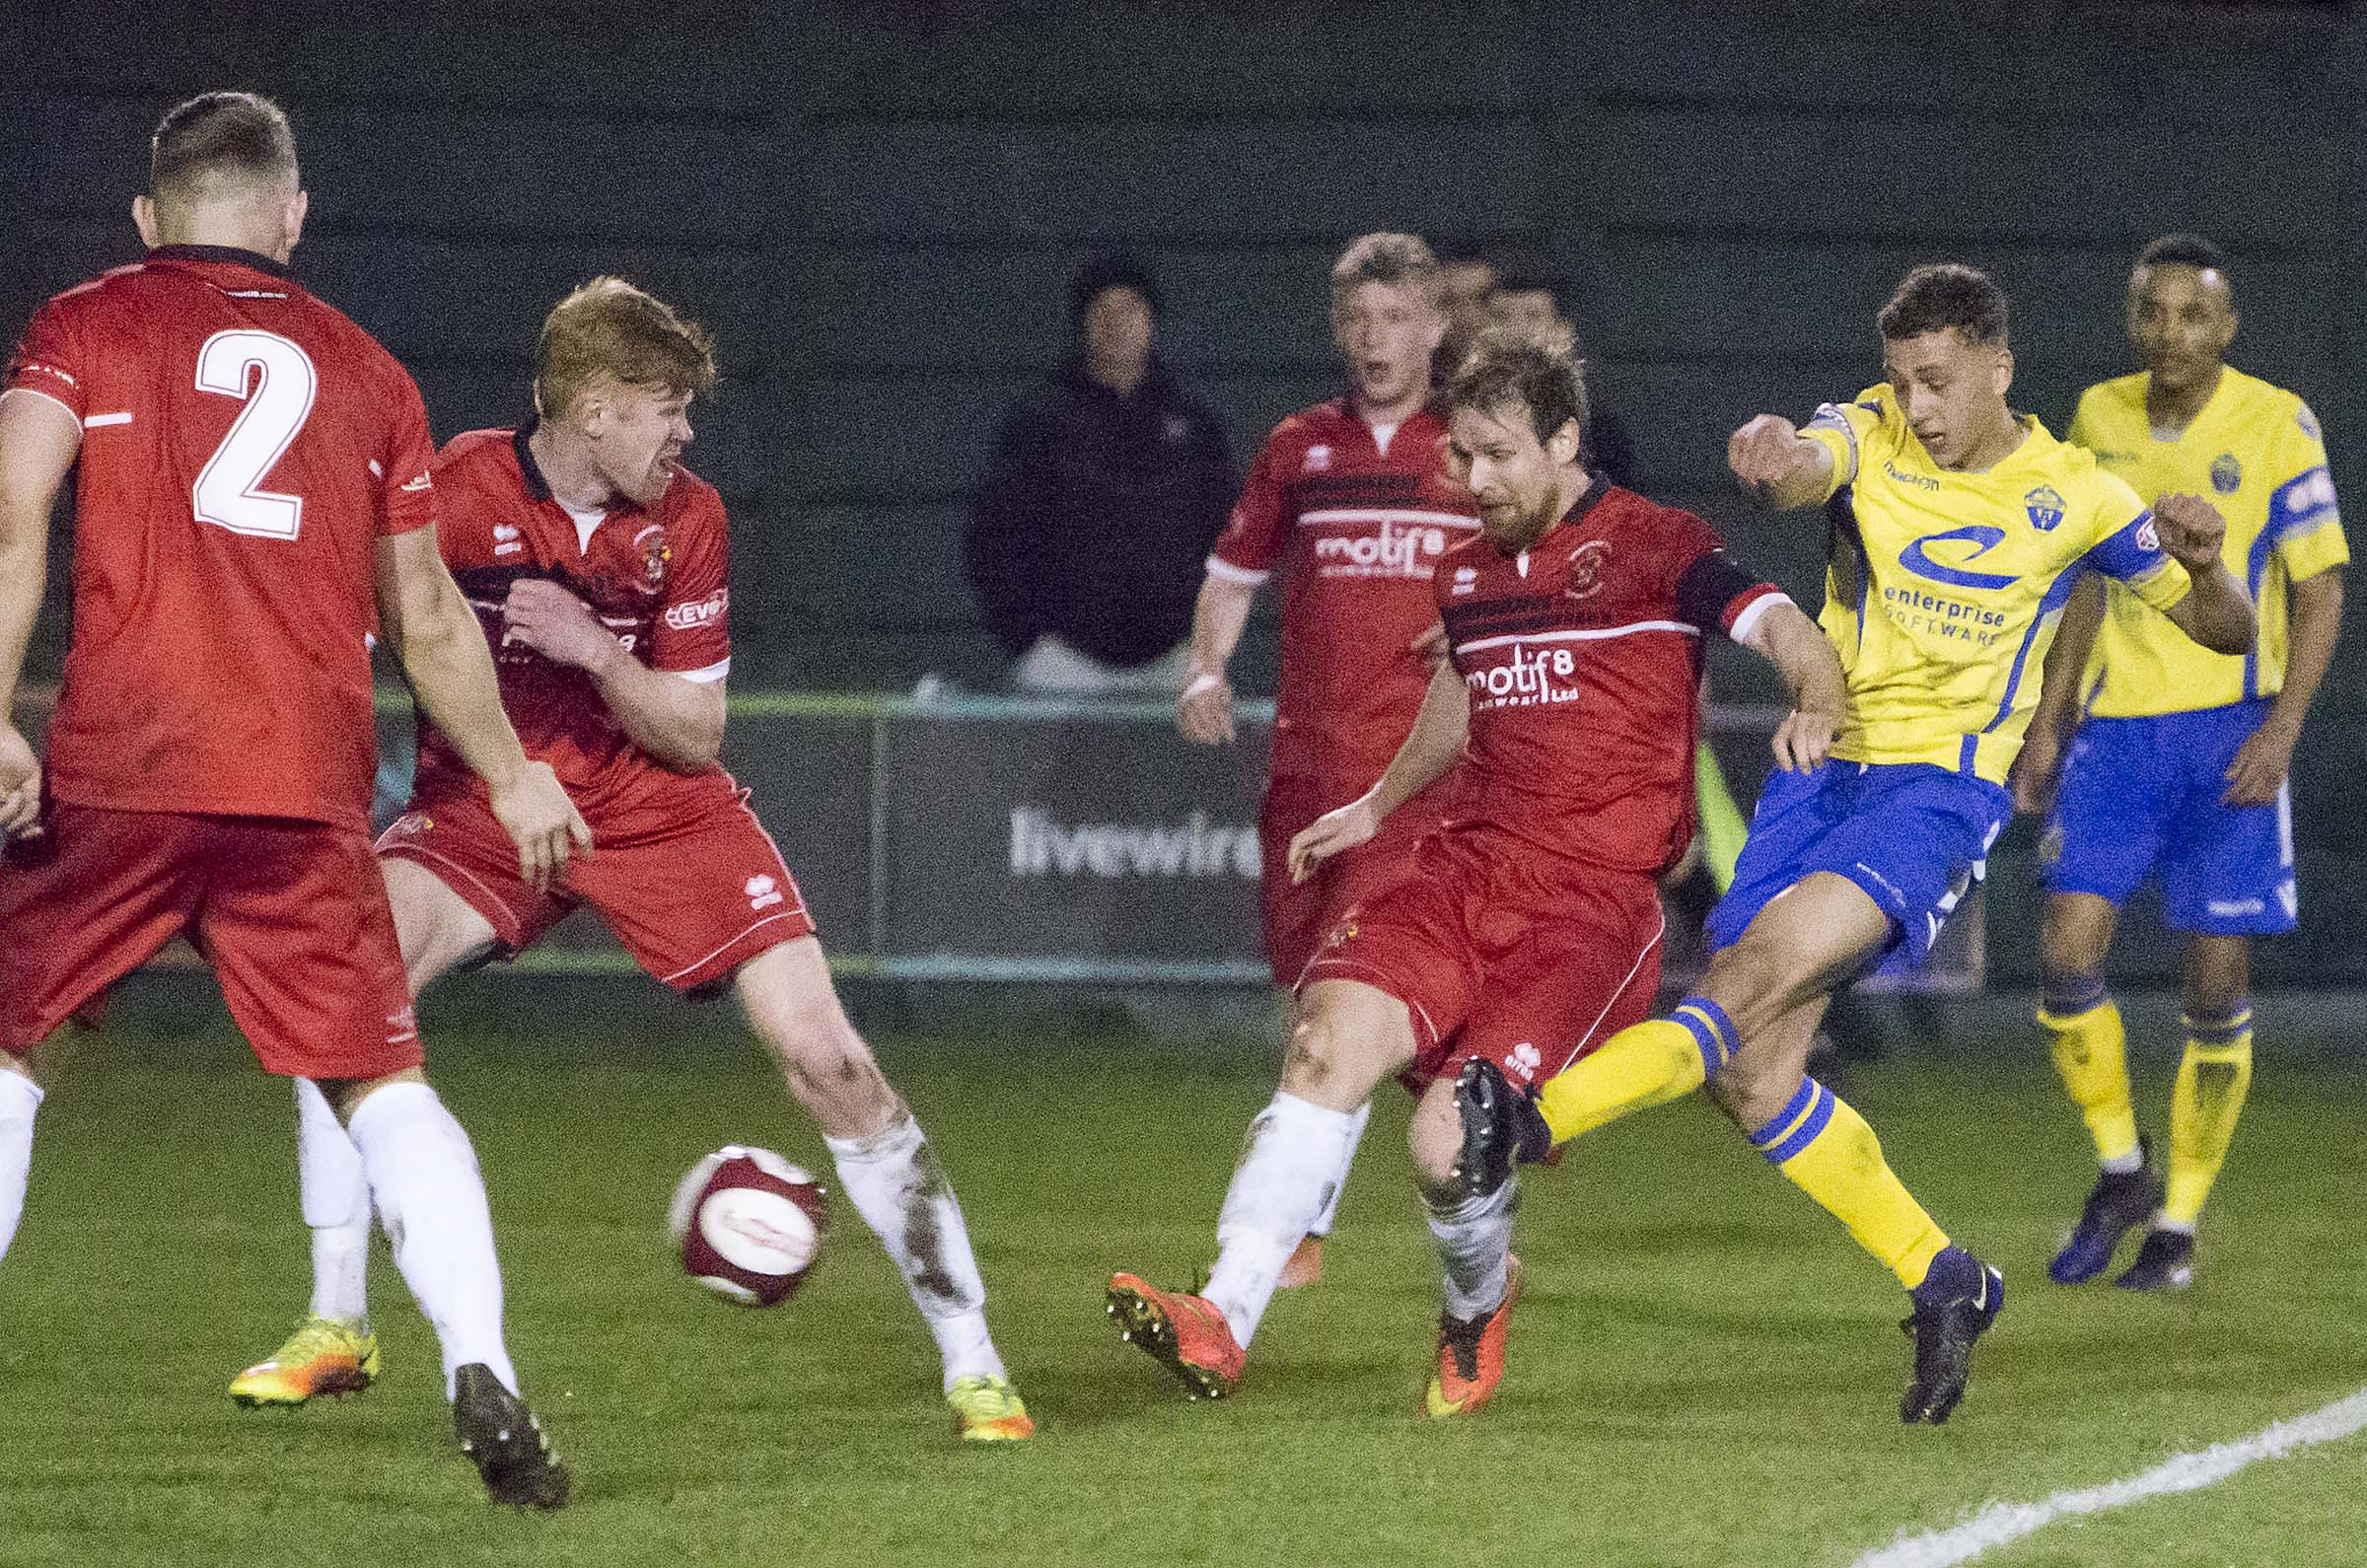 dylan-vassallo-warrington-town-spennymoor